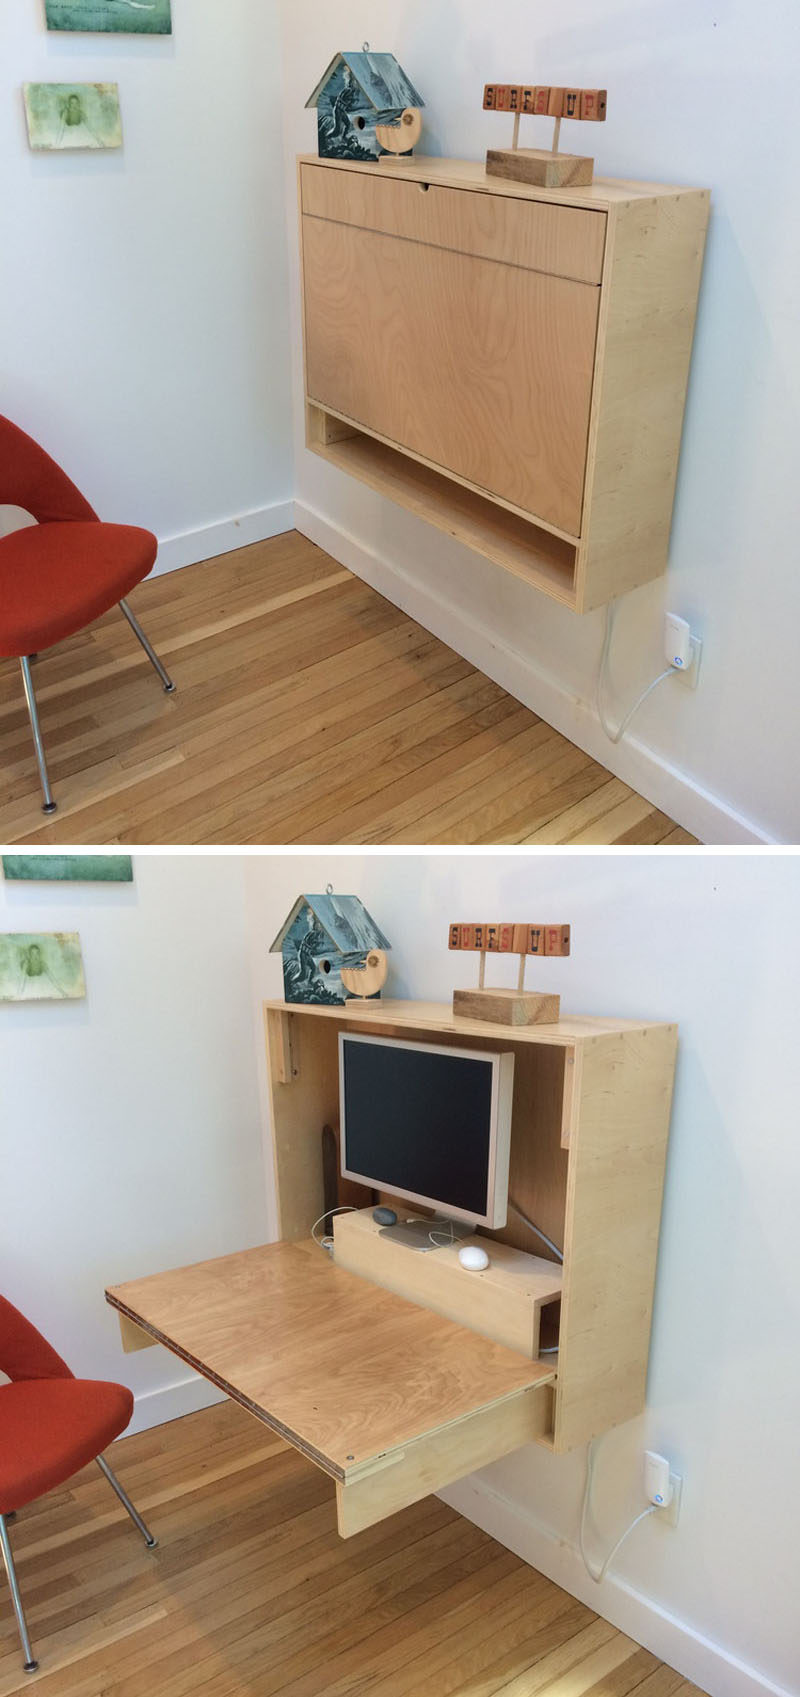 Superbe If Youu0027re Feeling Ambitious You Can Also Make Your Own Custom Fold Up Wall  Desk To Make Sure It Fits All Of Your Needs.